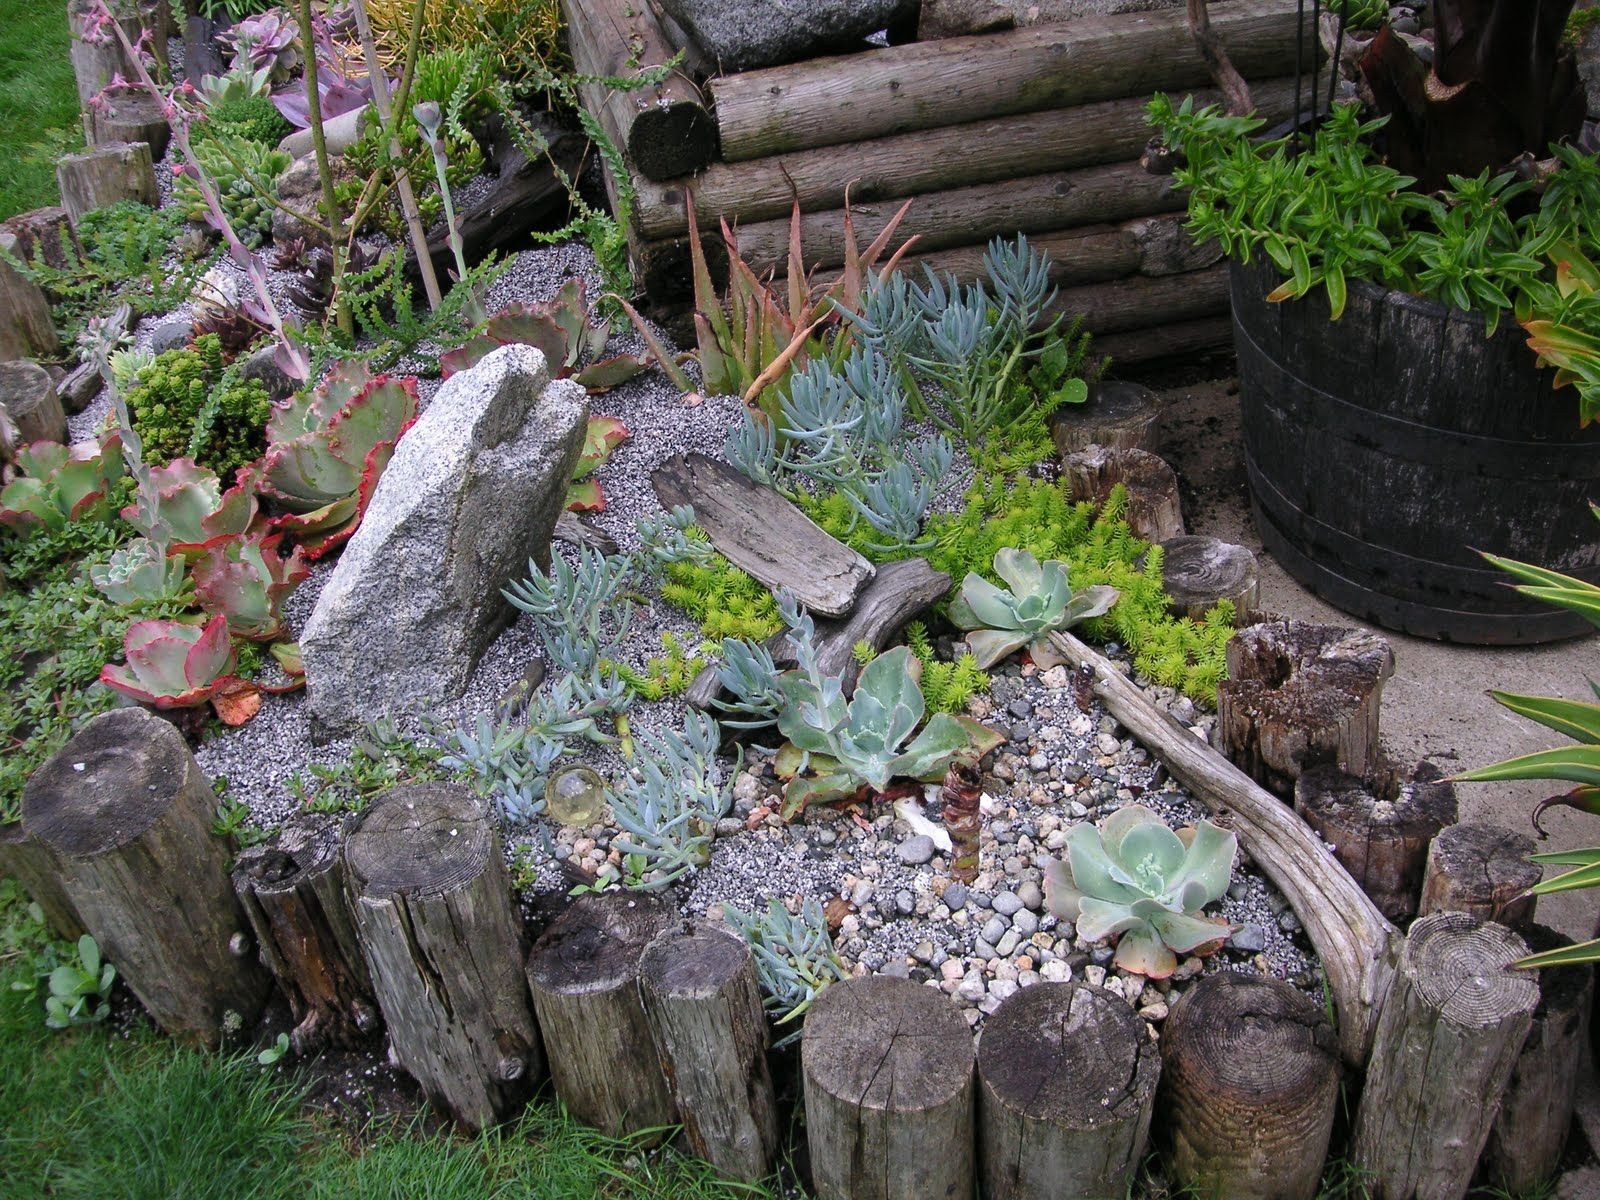 Backyard Designs Using Drifwood | ... Side Of The Same Garden. I Love